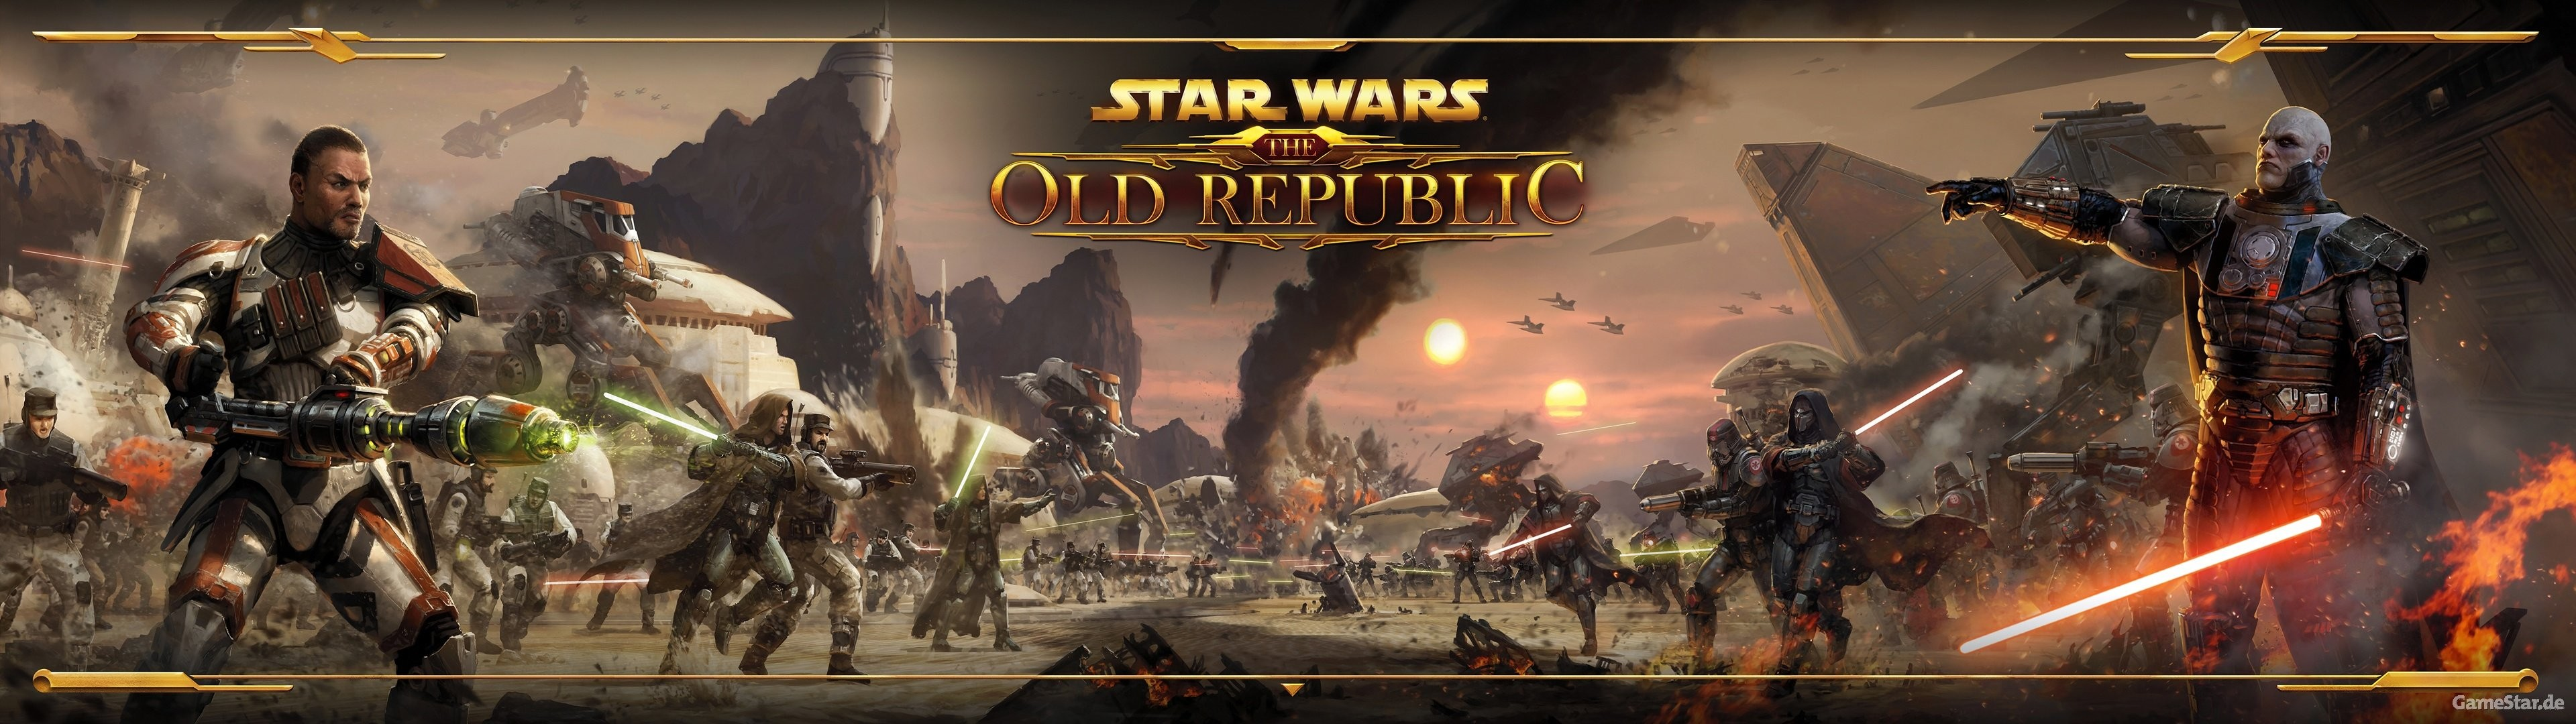 Res: 3840x1080, STAR WARS OLD REPUBLIC mmo rpg swtor fighting sci-fi wallpaper |   | 518892 | WallpaperUP